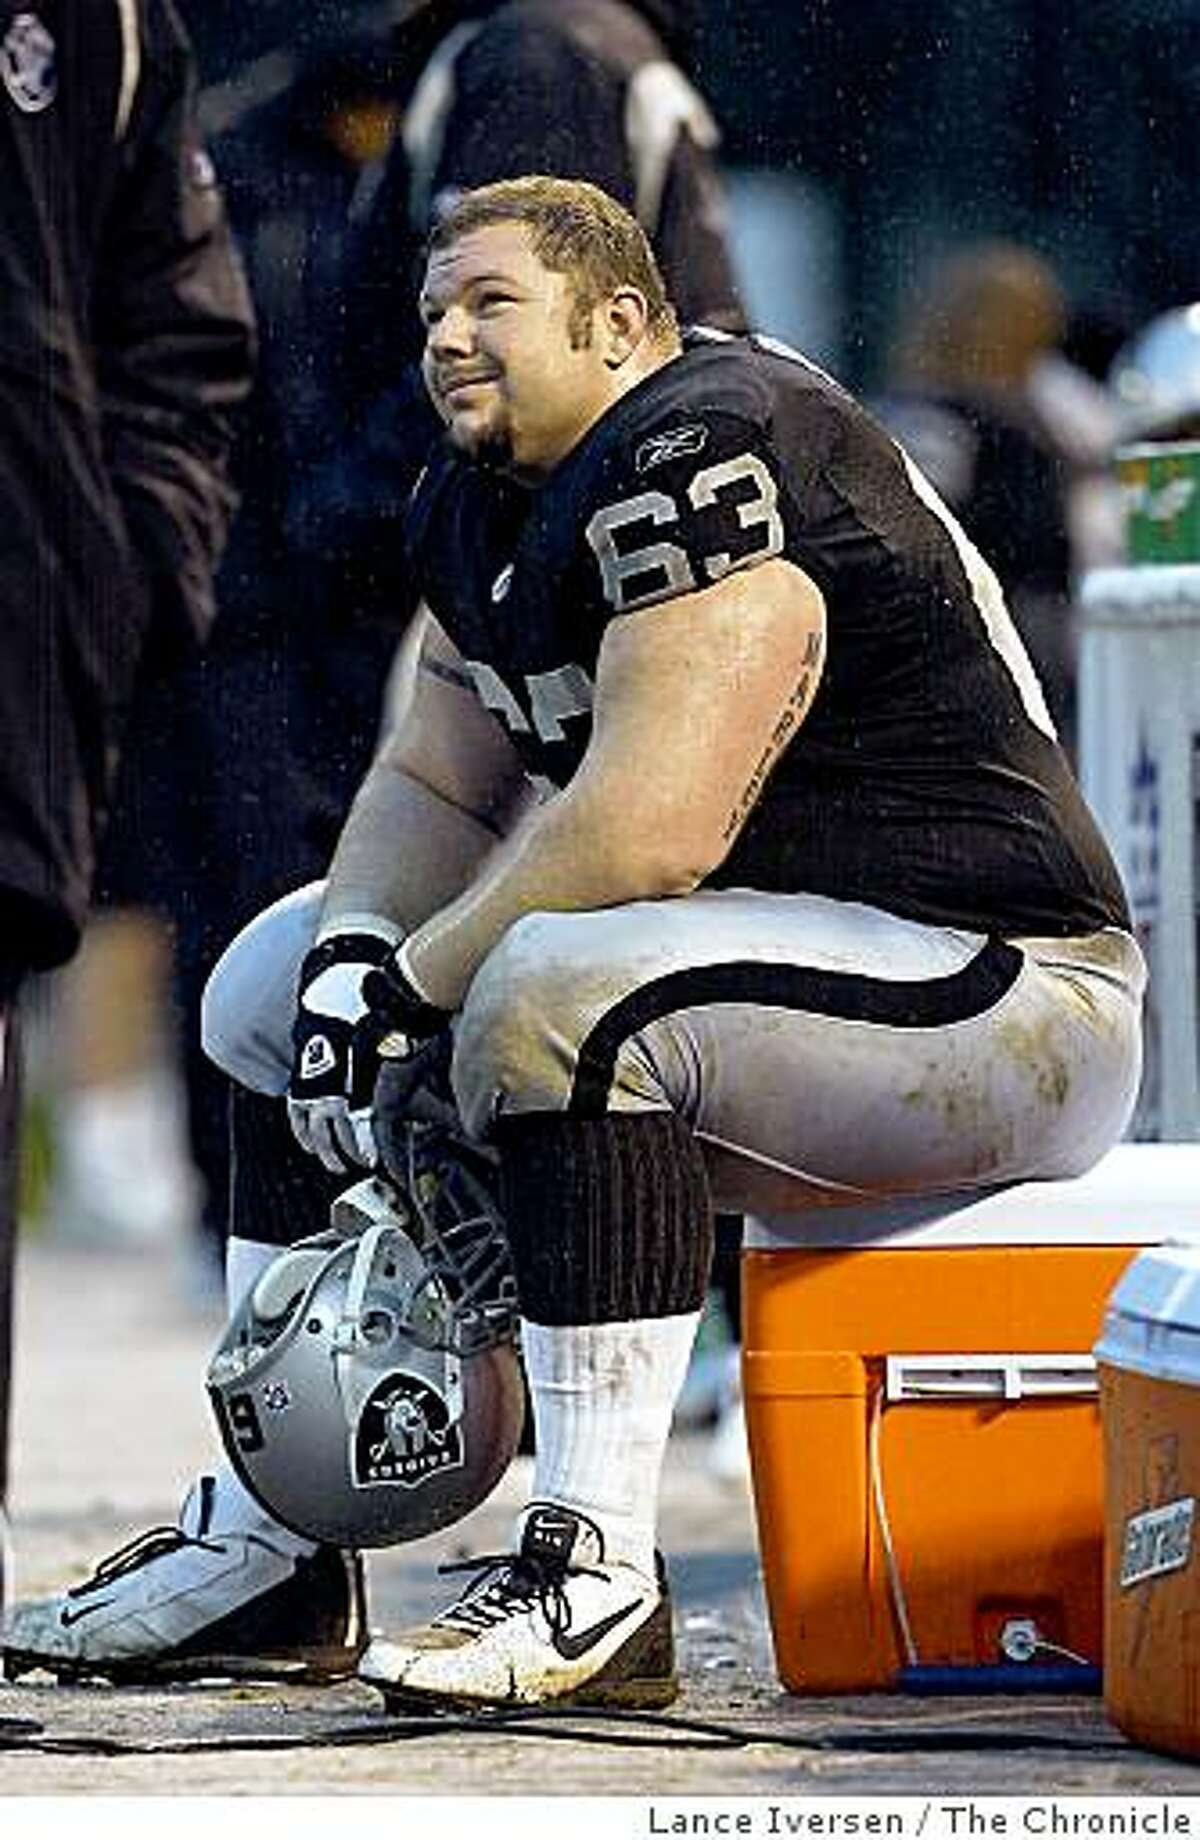 Here are the athletes and officials who were caught up in the BALCO scandal -- a case that raised awareness on performance-enhancing substances and sports: Oakland Raiders center Barret Robbins.